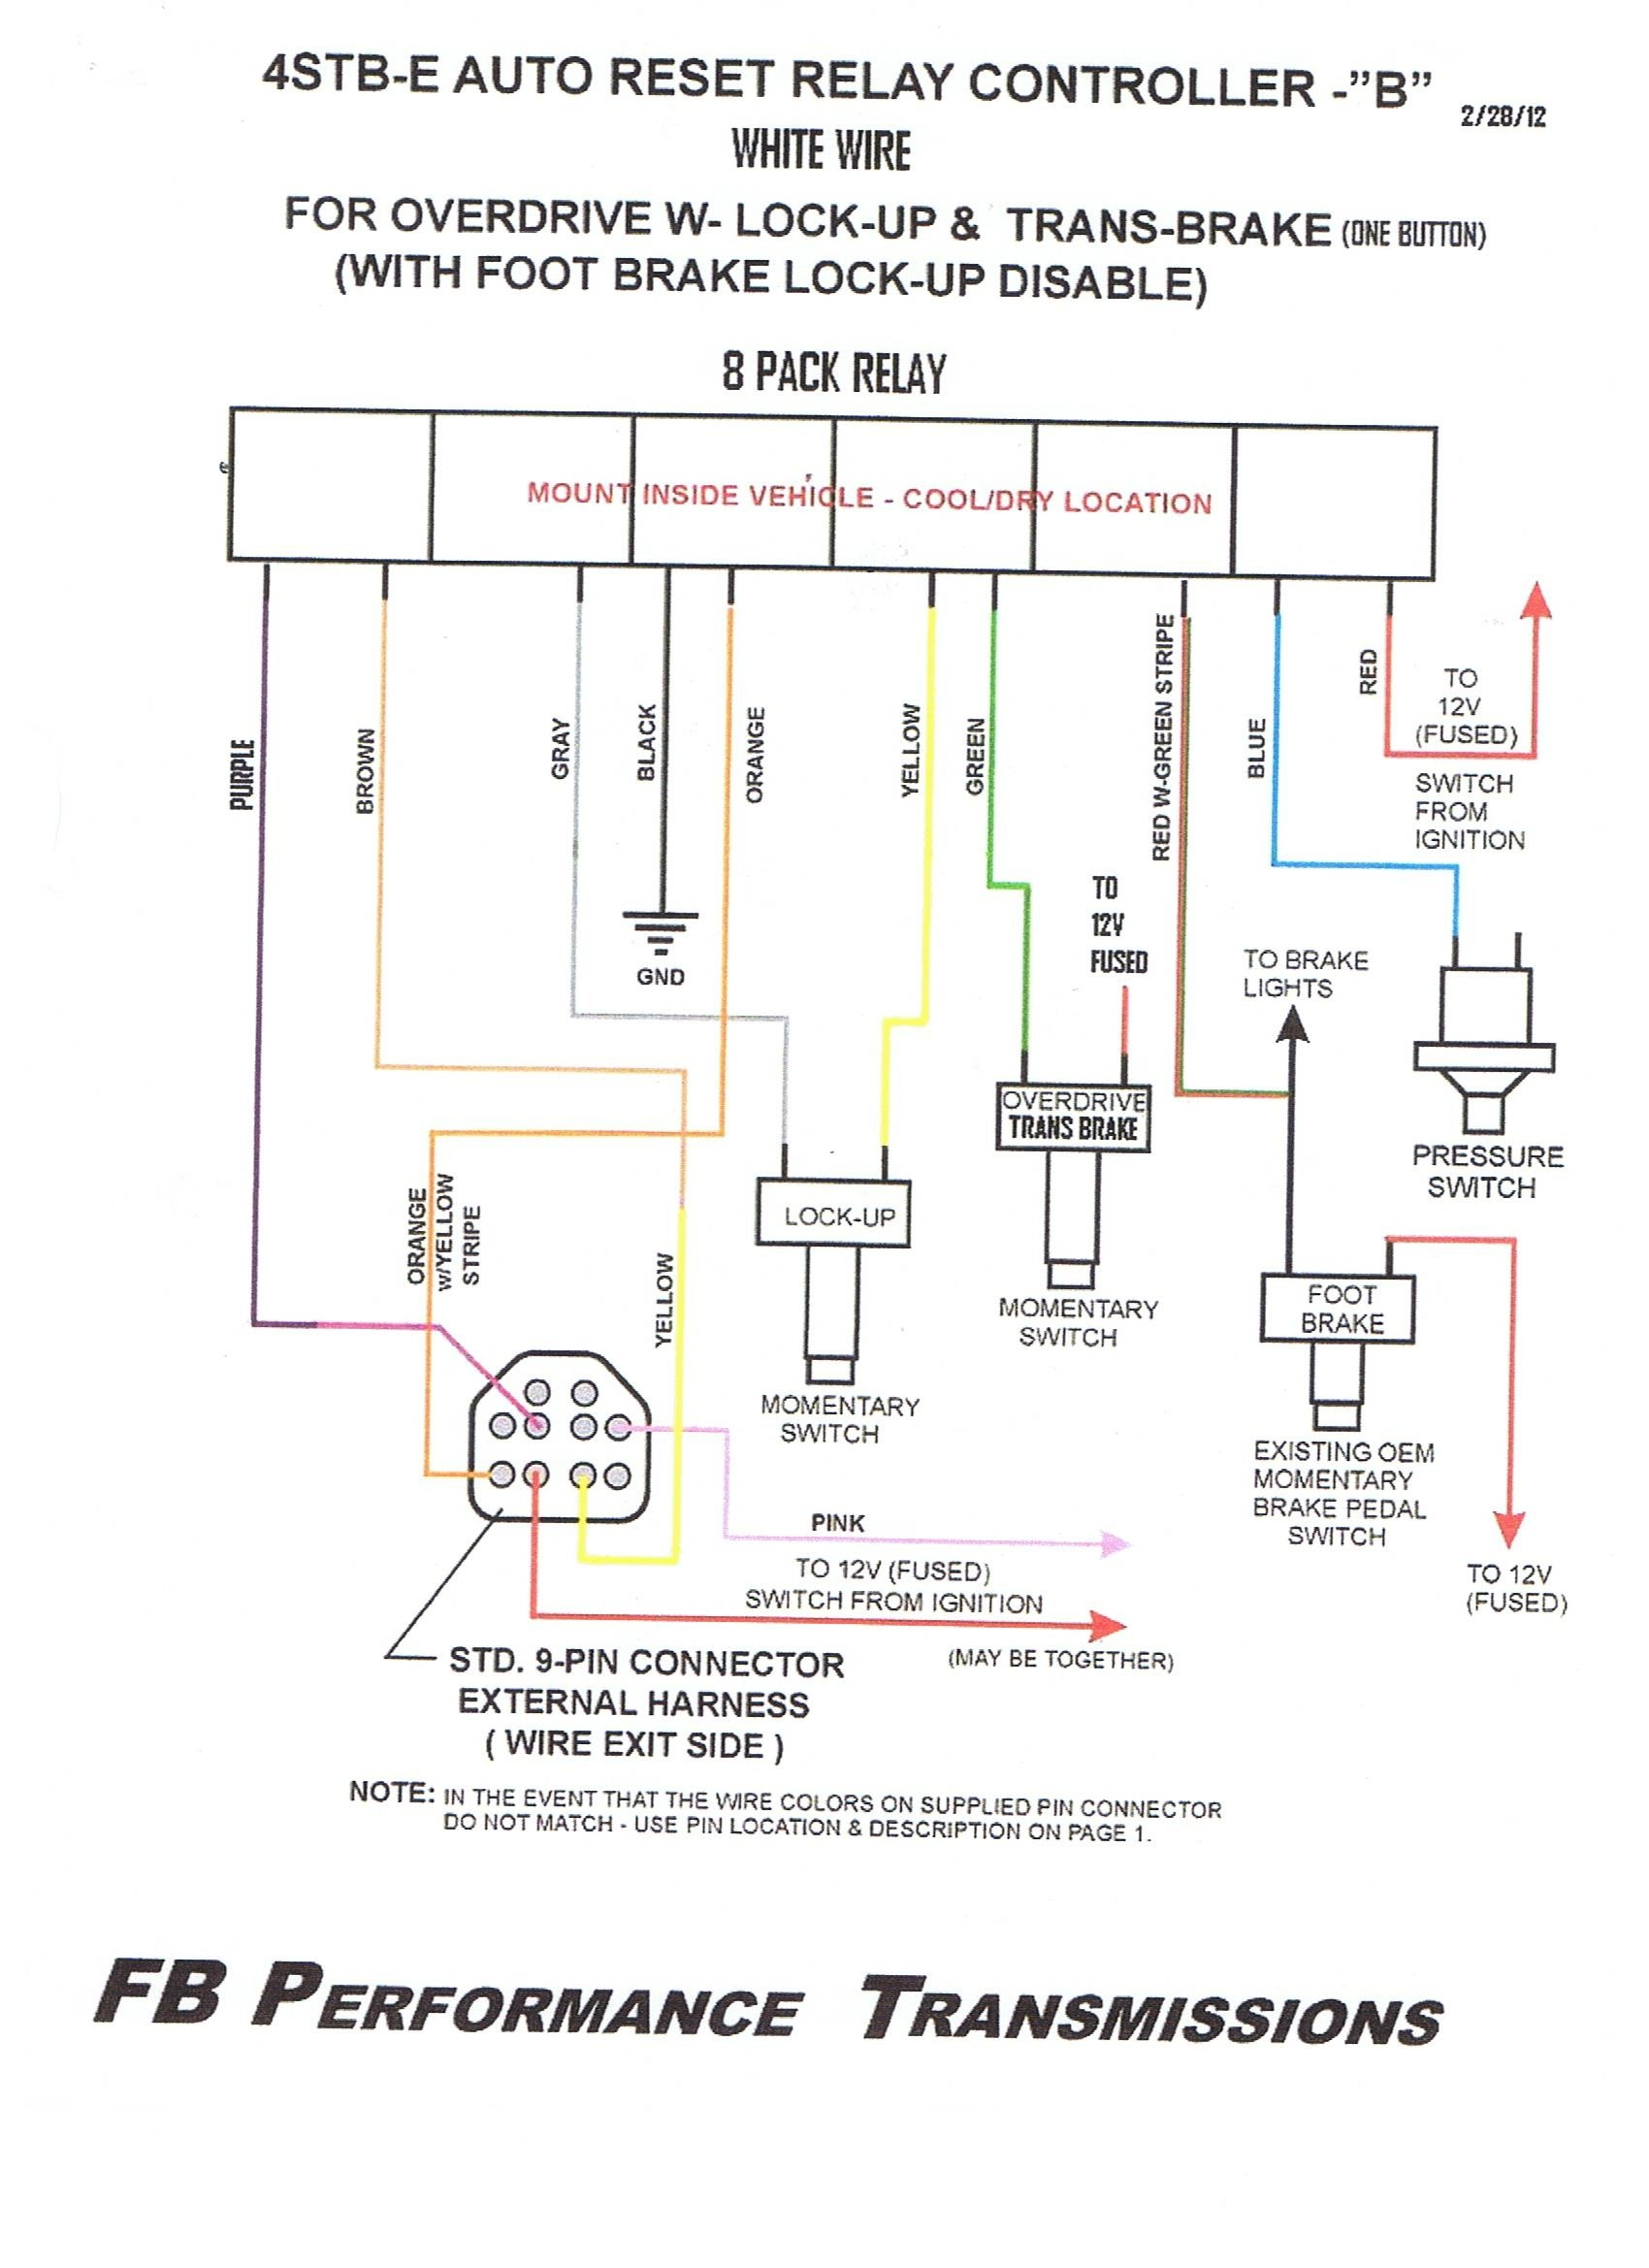 8 3 Cummins Fuel Shutoff Solenoid Wiring Diagram Free Wiring Diagram